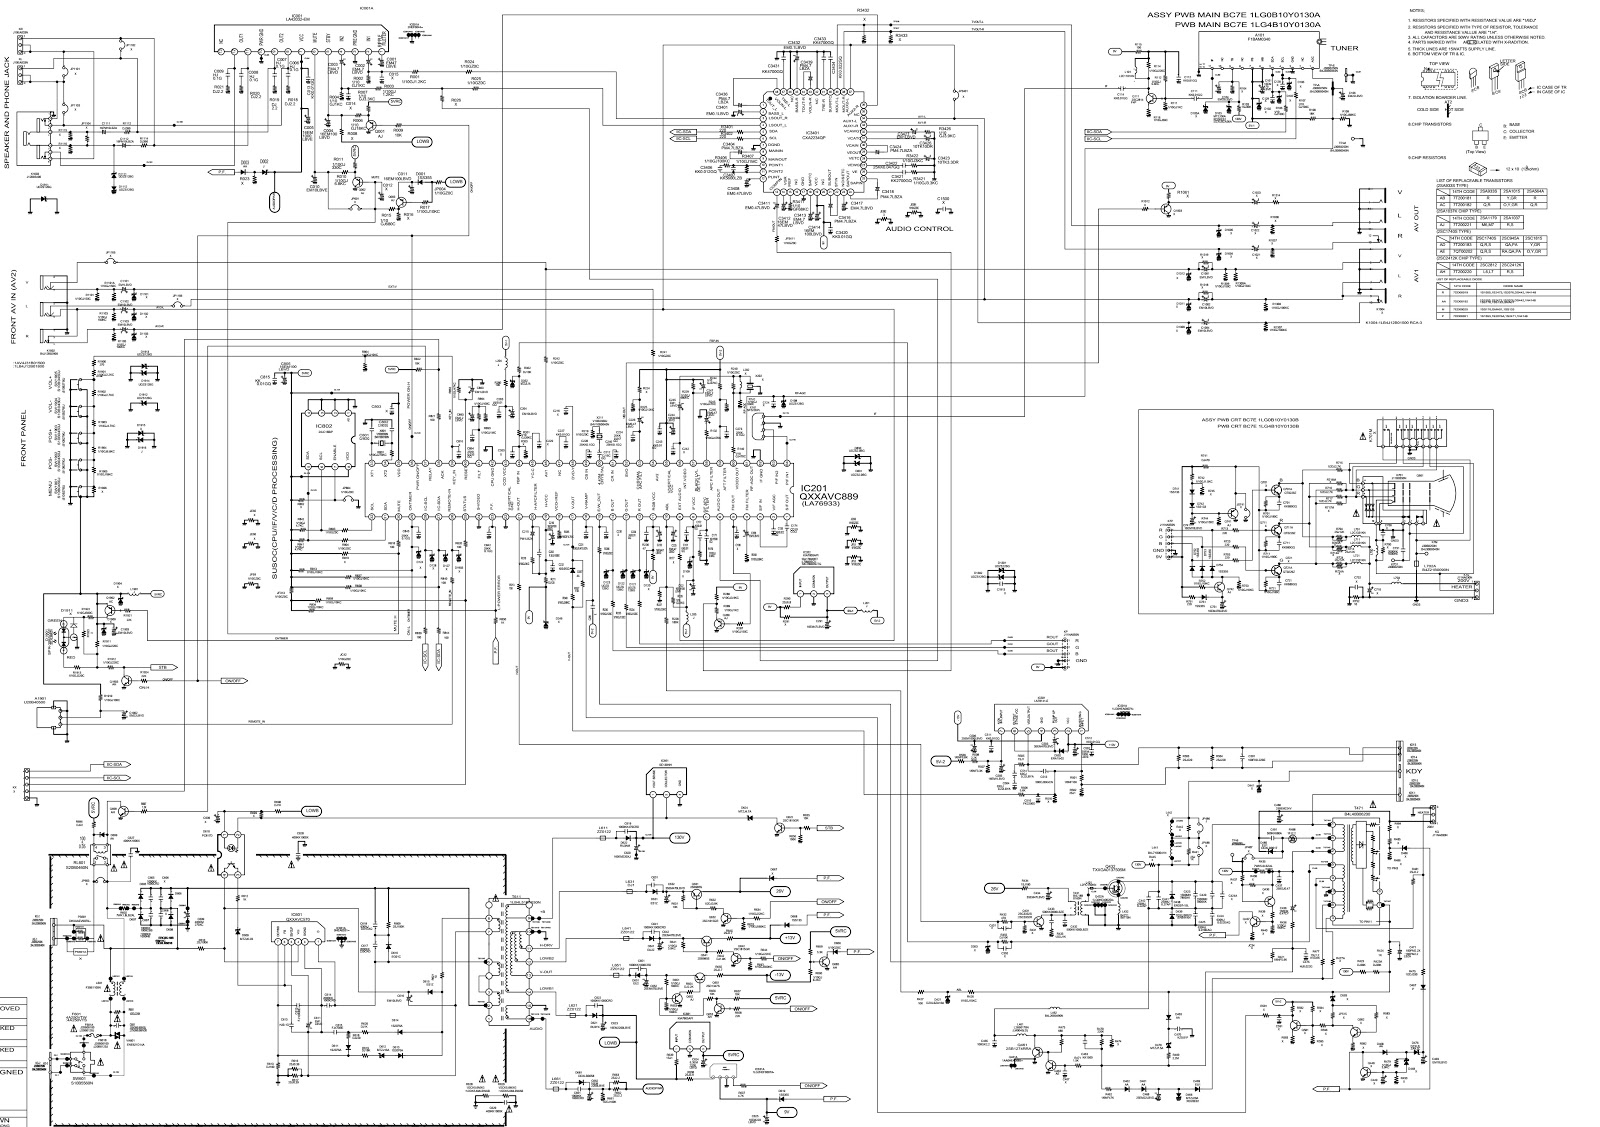 medium resolution of sanyo tv circuit diagram wiring diagram third level rh 14 2 14 jacobwinterstein com wall mount tv wiring typical home wiring diagrams audio